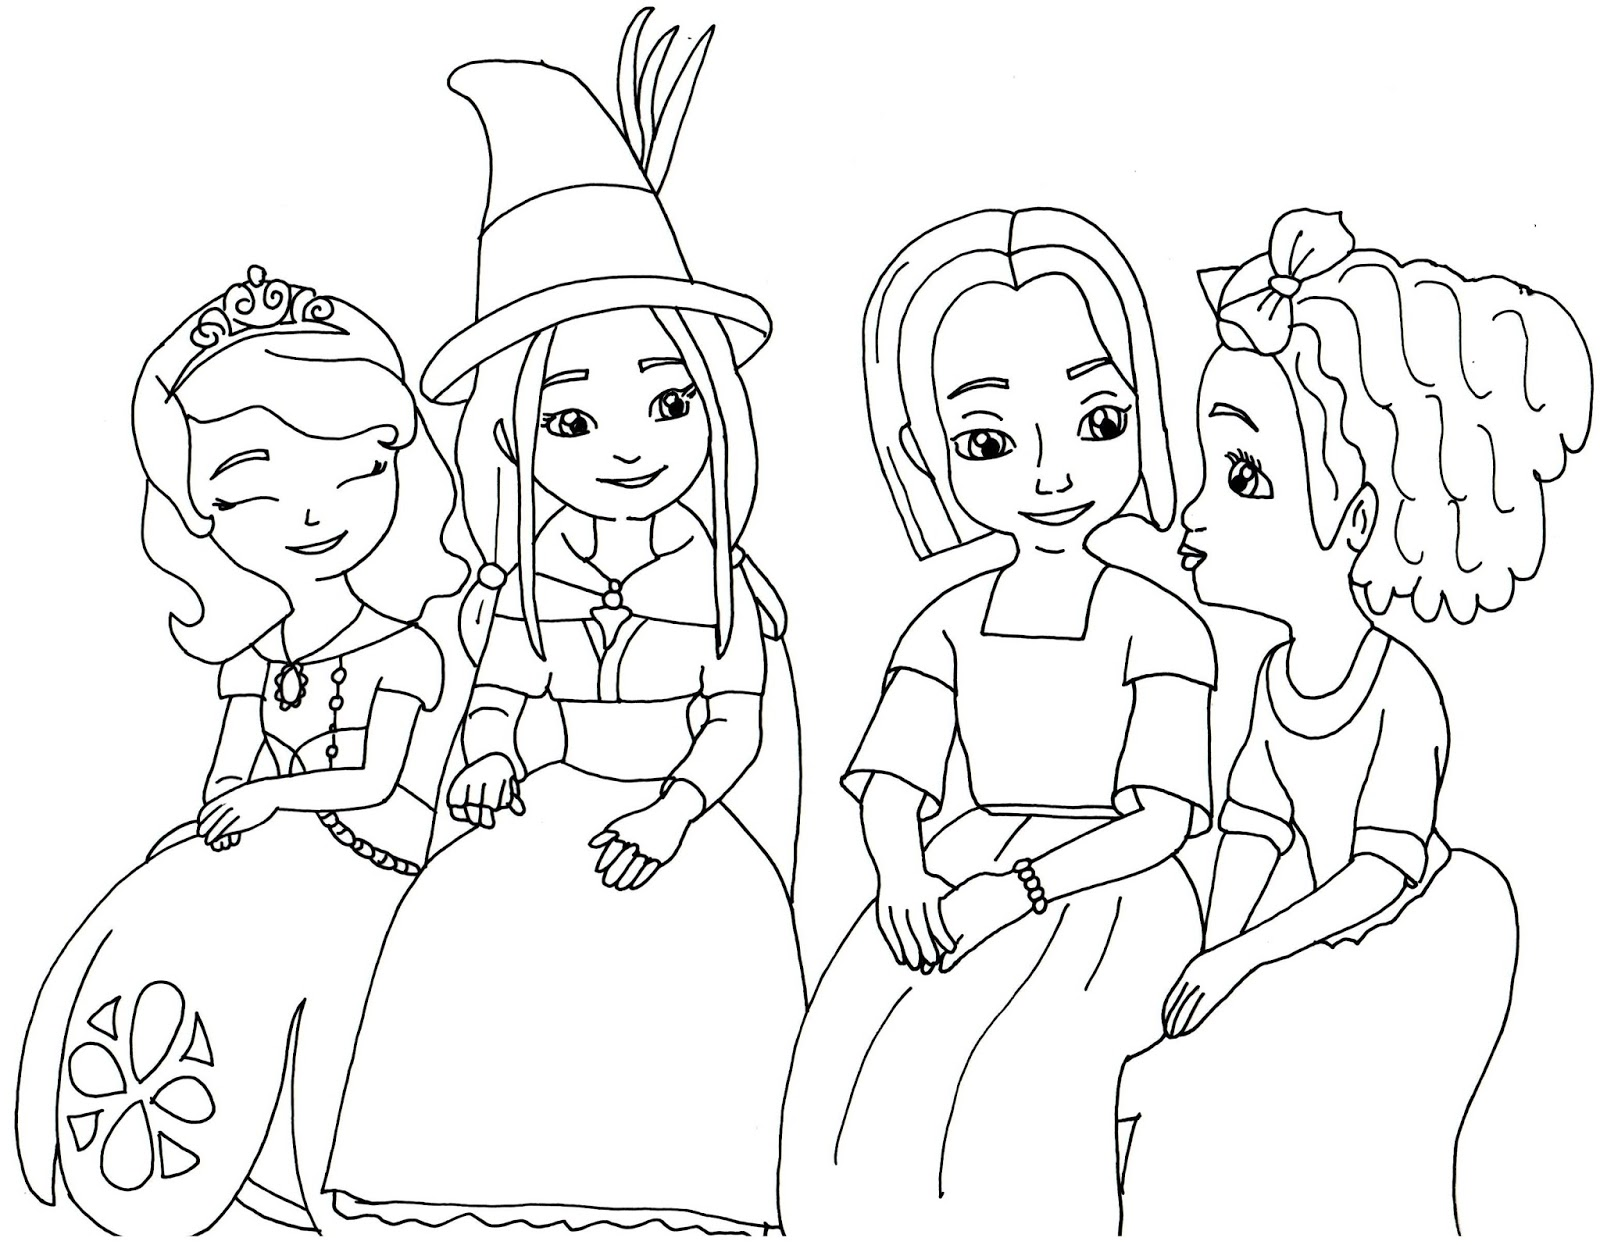 It's just a photo of Revered Princess Sophia Coloring Pages